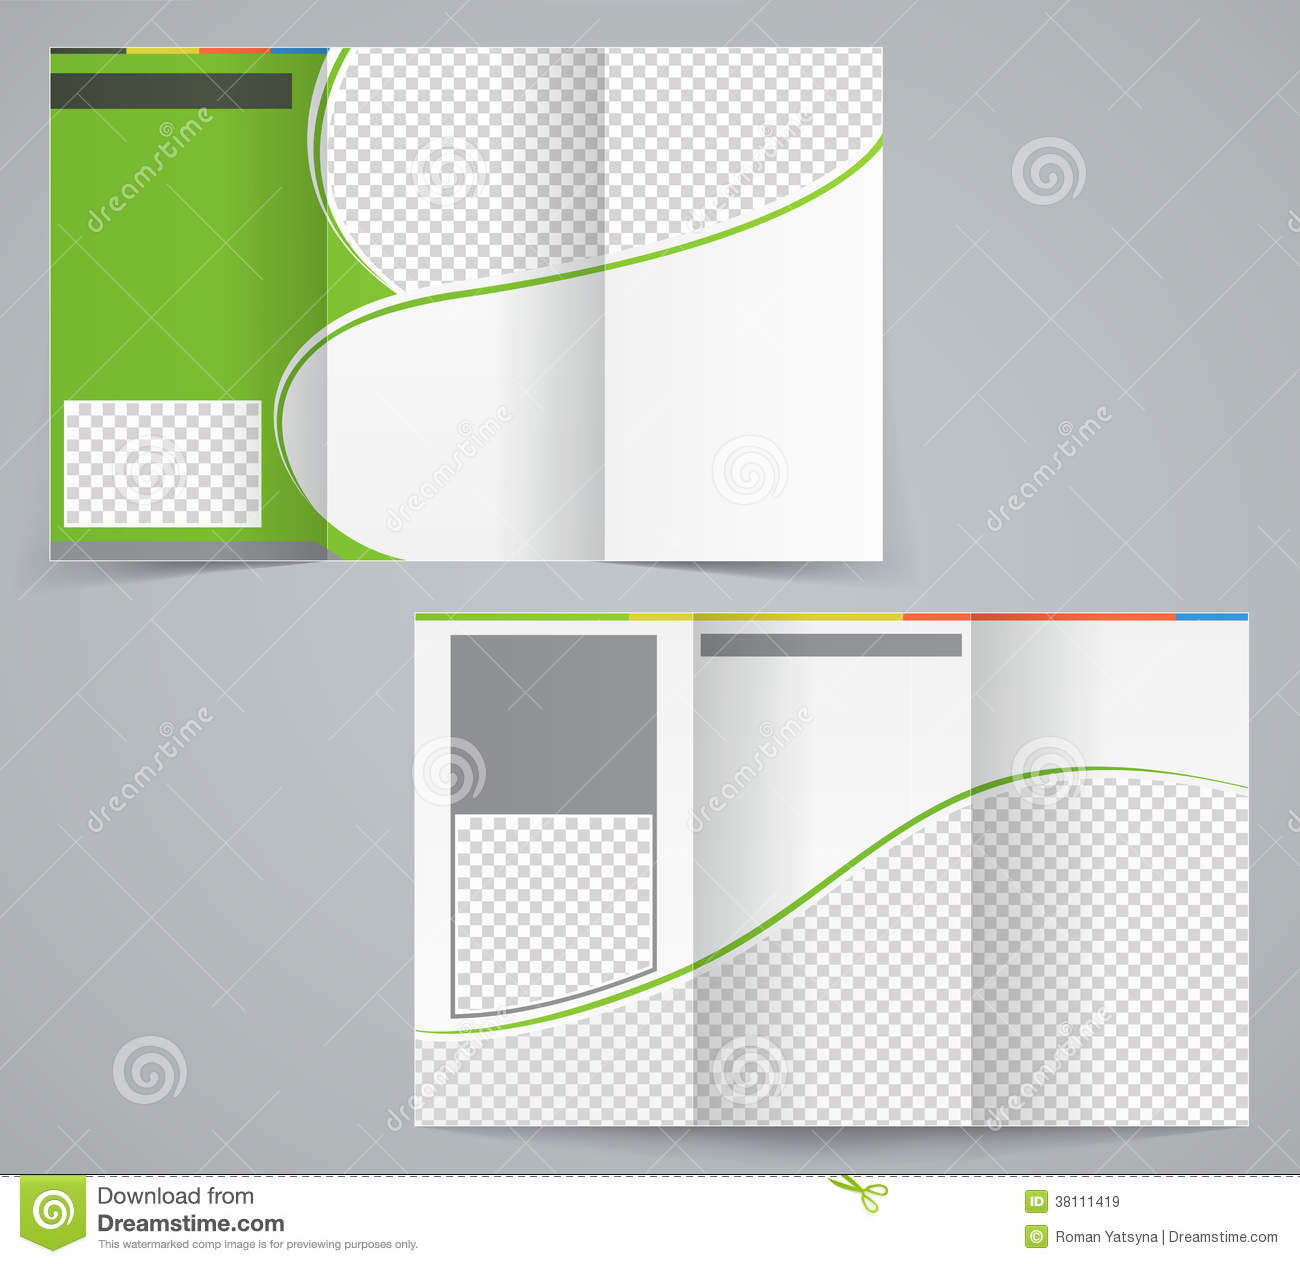 Tri Fold Business Brochure Template, Vector Green Stock With Regard To Brochure Template Illustrator Free Download